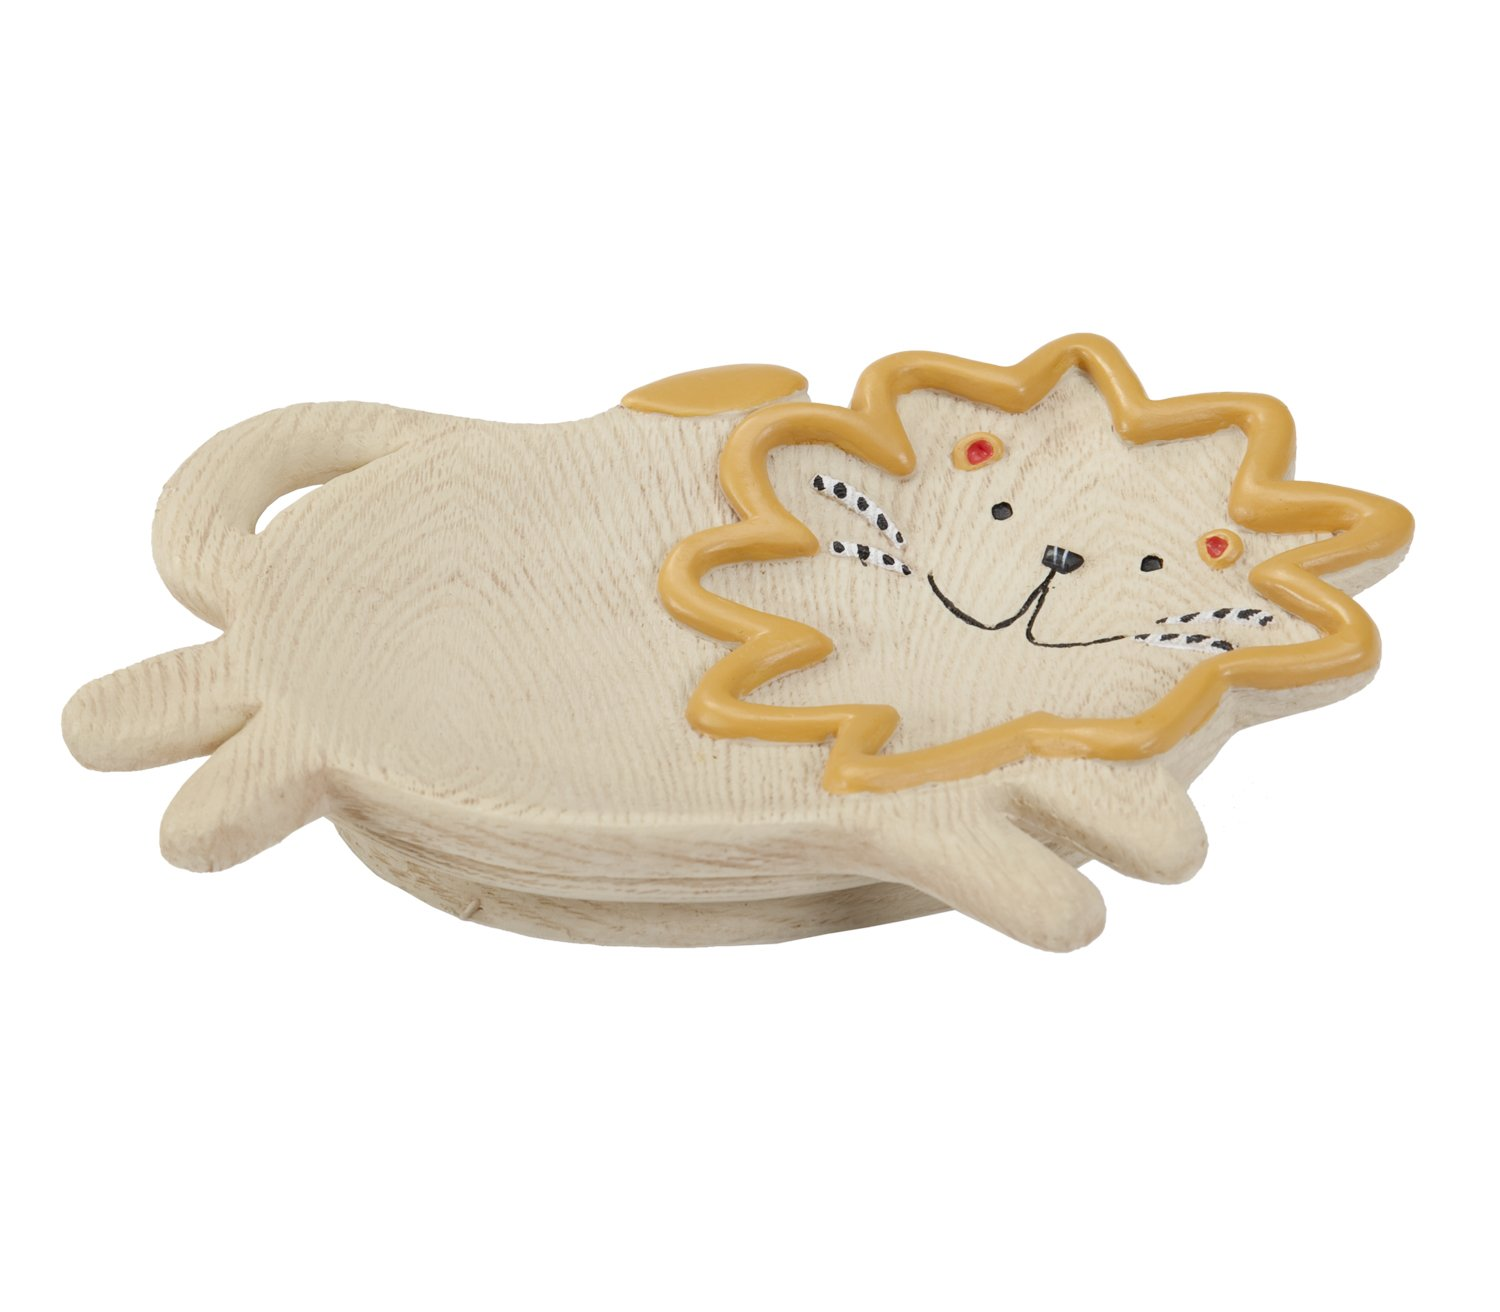 Creative Bath Products Animal Crackers Soap Dish